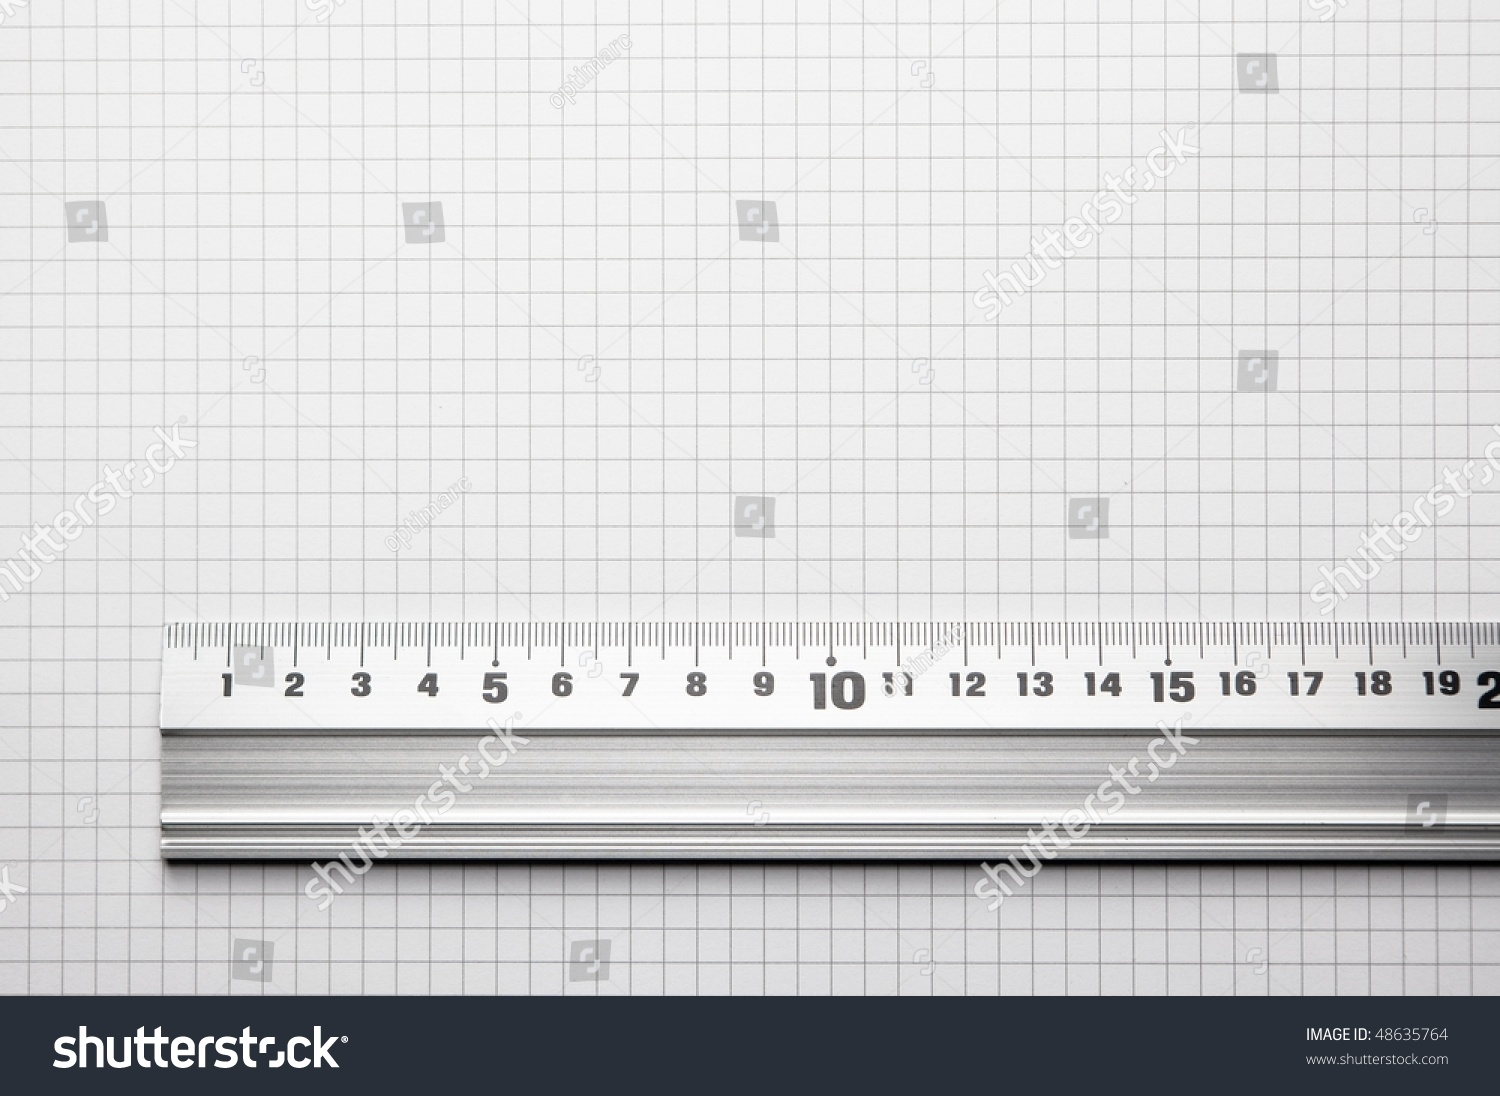 Ruler Aligned To A Scaled Paper. For Showing Actual Size Of A ...